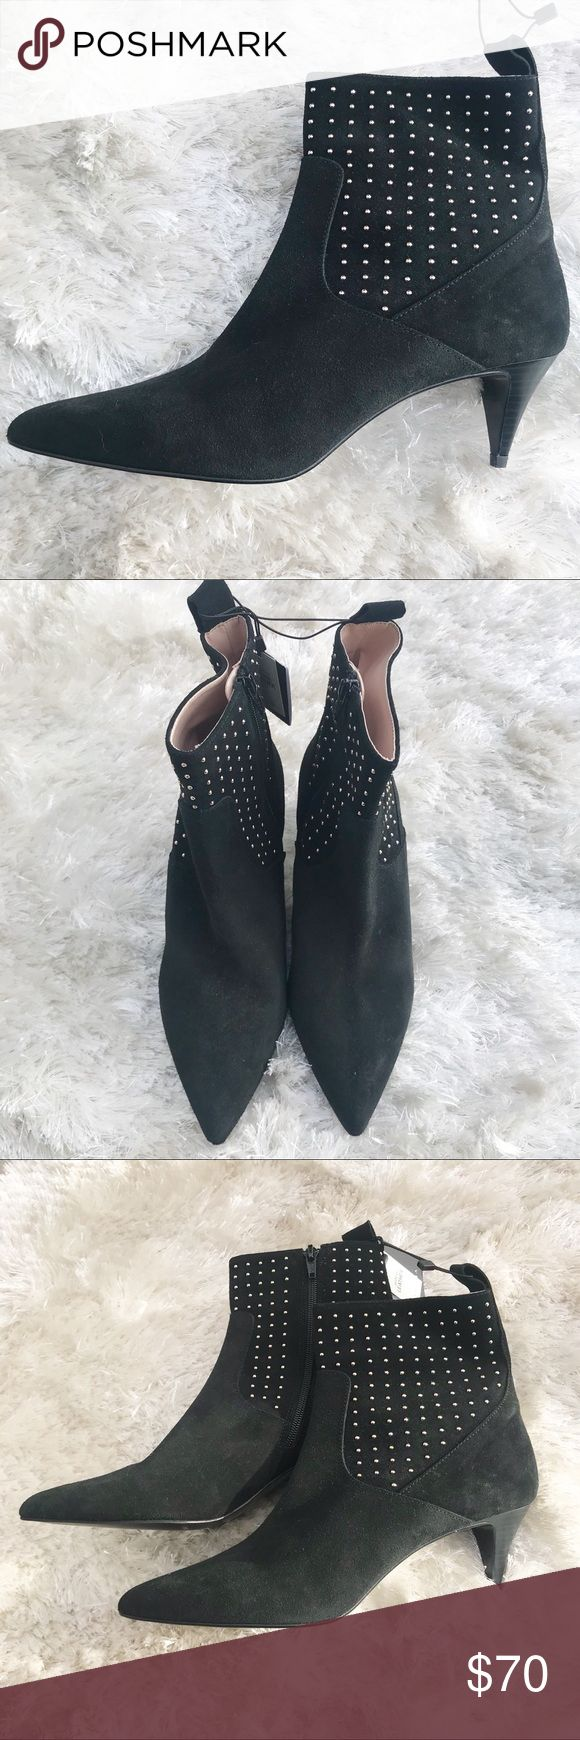 NWT || ZARA Silver Stud Ankle Boots Zara Elastic Black Leather Suede Booties with silver stud Detail. Sizes 39 (8) and 41 (10) available. Please see Zara size chart prior to purchase. New with tags. Zara Shoes Ankle Boots & Booties